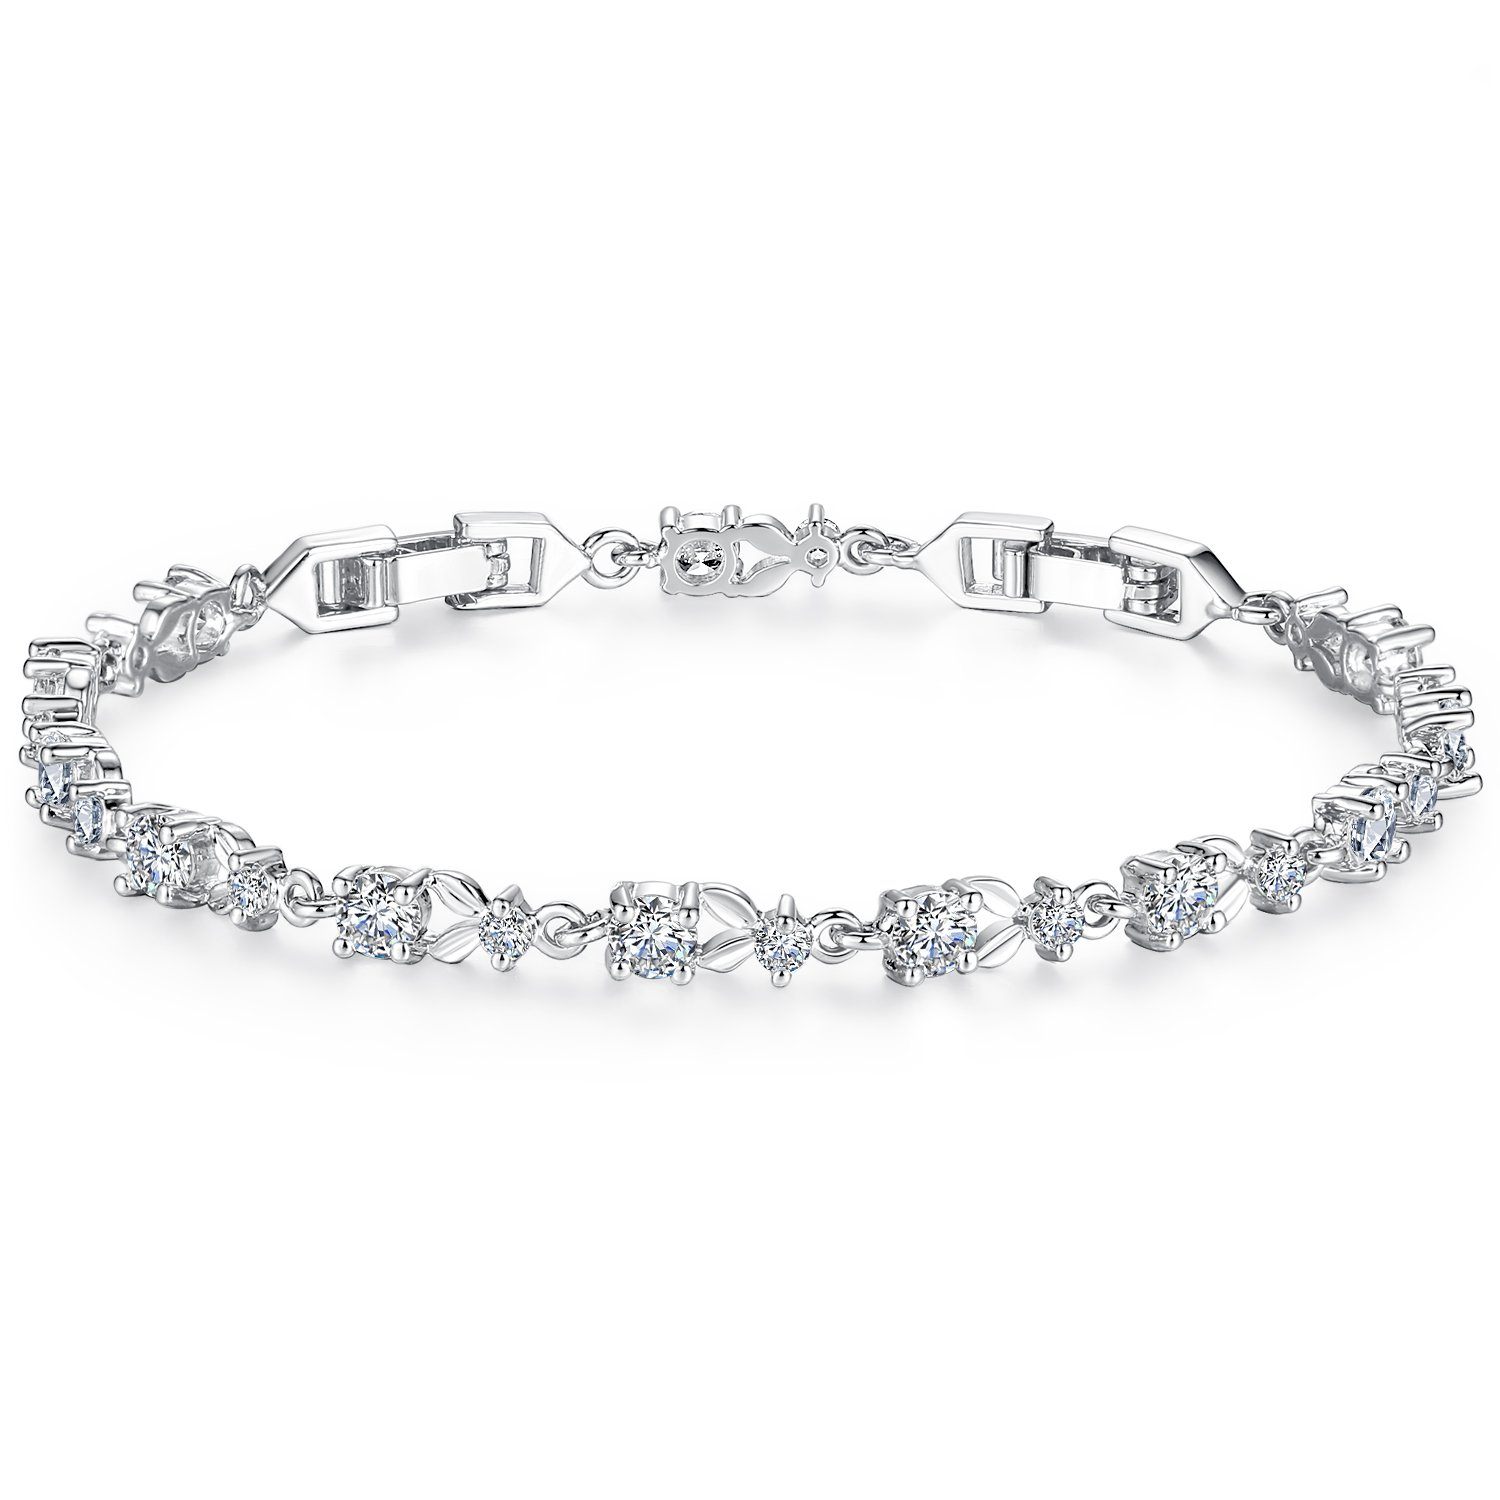 WOSTU Women Tennis Bracelets Luxury White Gold Plated Bracelet with Sparkling Cubic Zirconia Anniversary Gifts for her